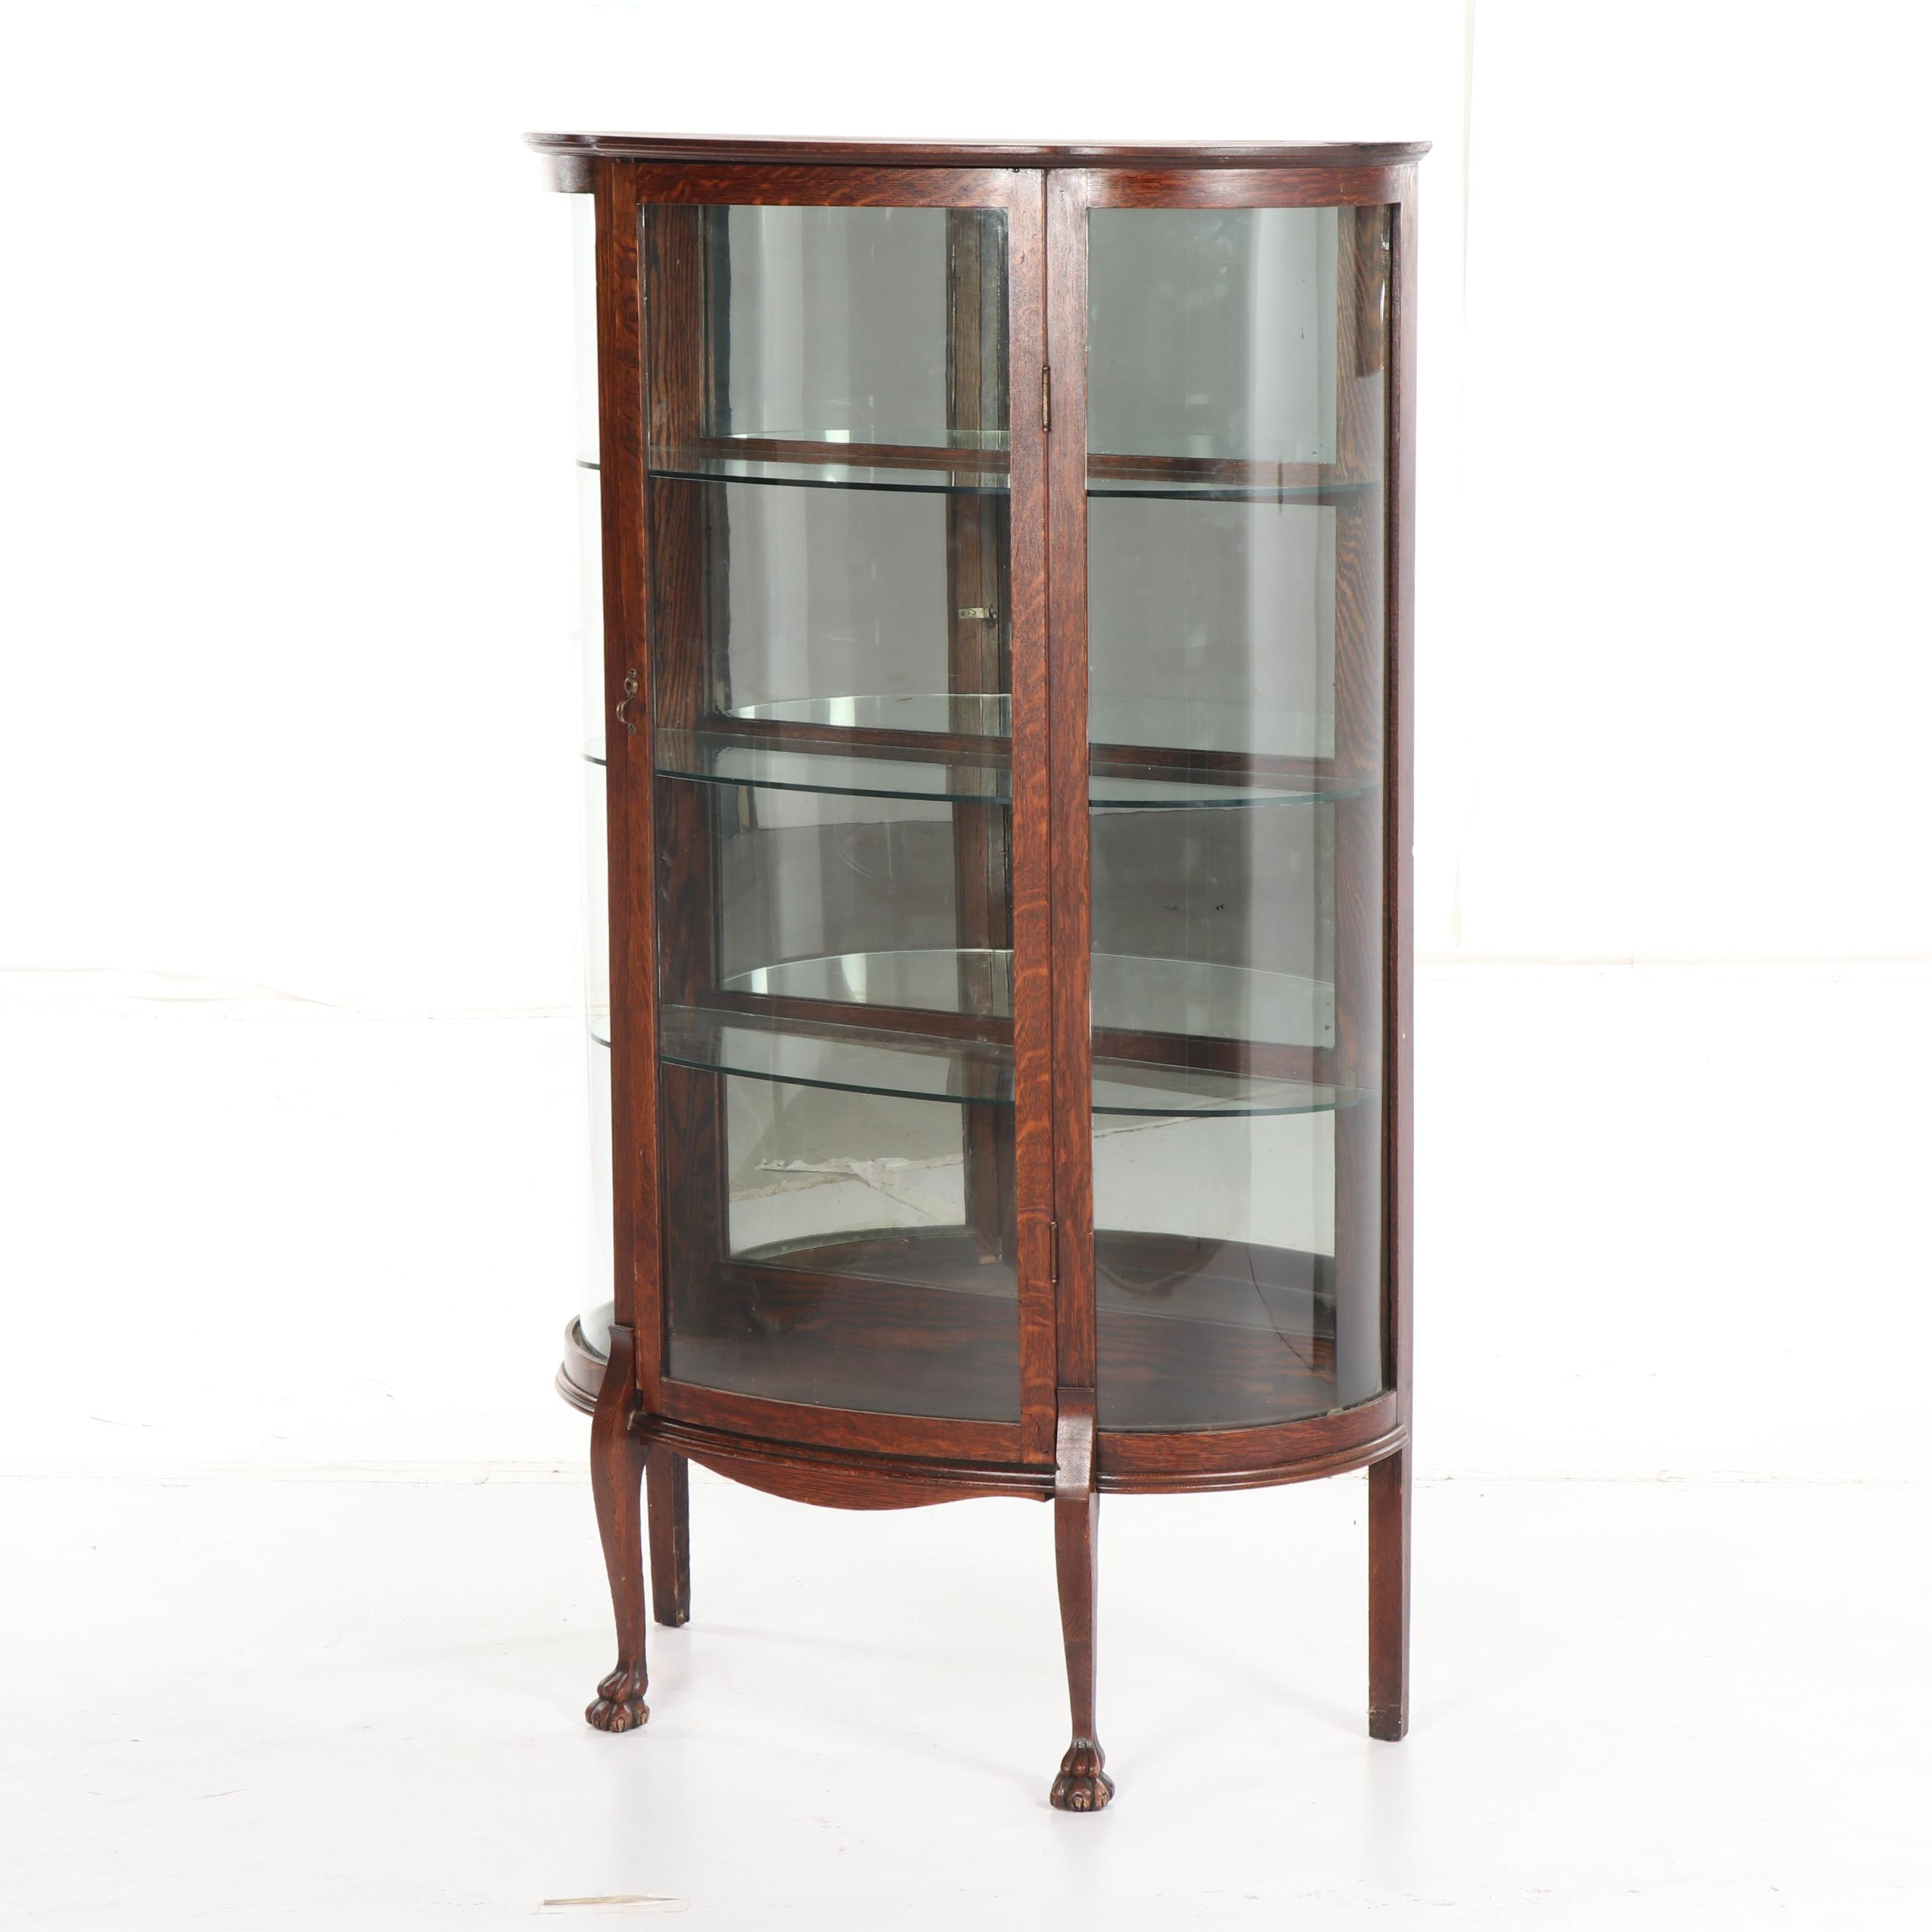 Oak Three-Shelf Curio Cabinet with Mirrored Back Panel, Early 20th Century